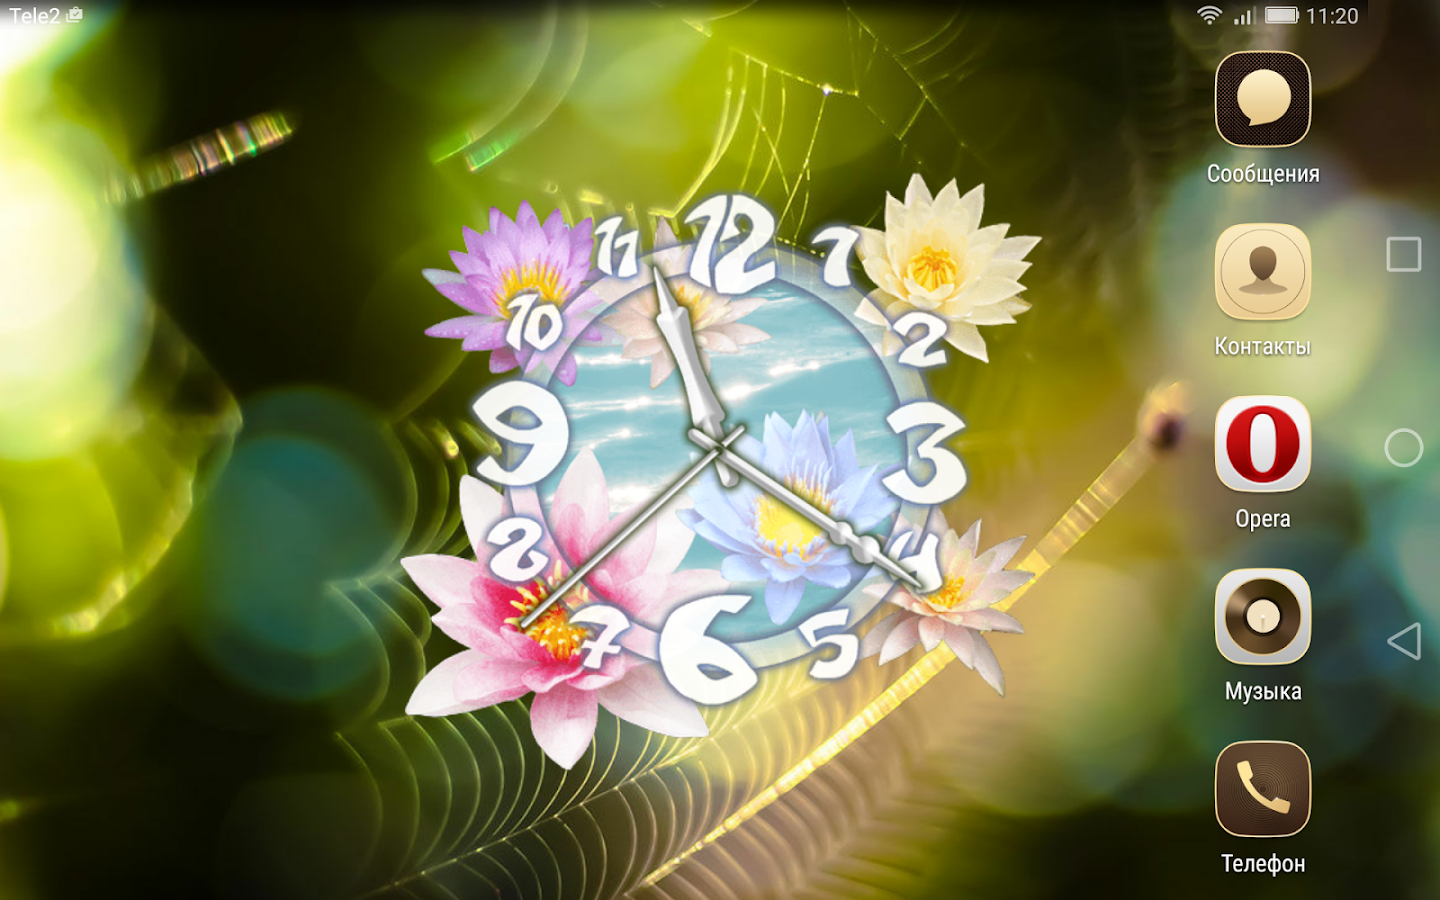 Flower Clock Live Wallpaper Android Apps on Google Play